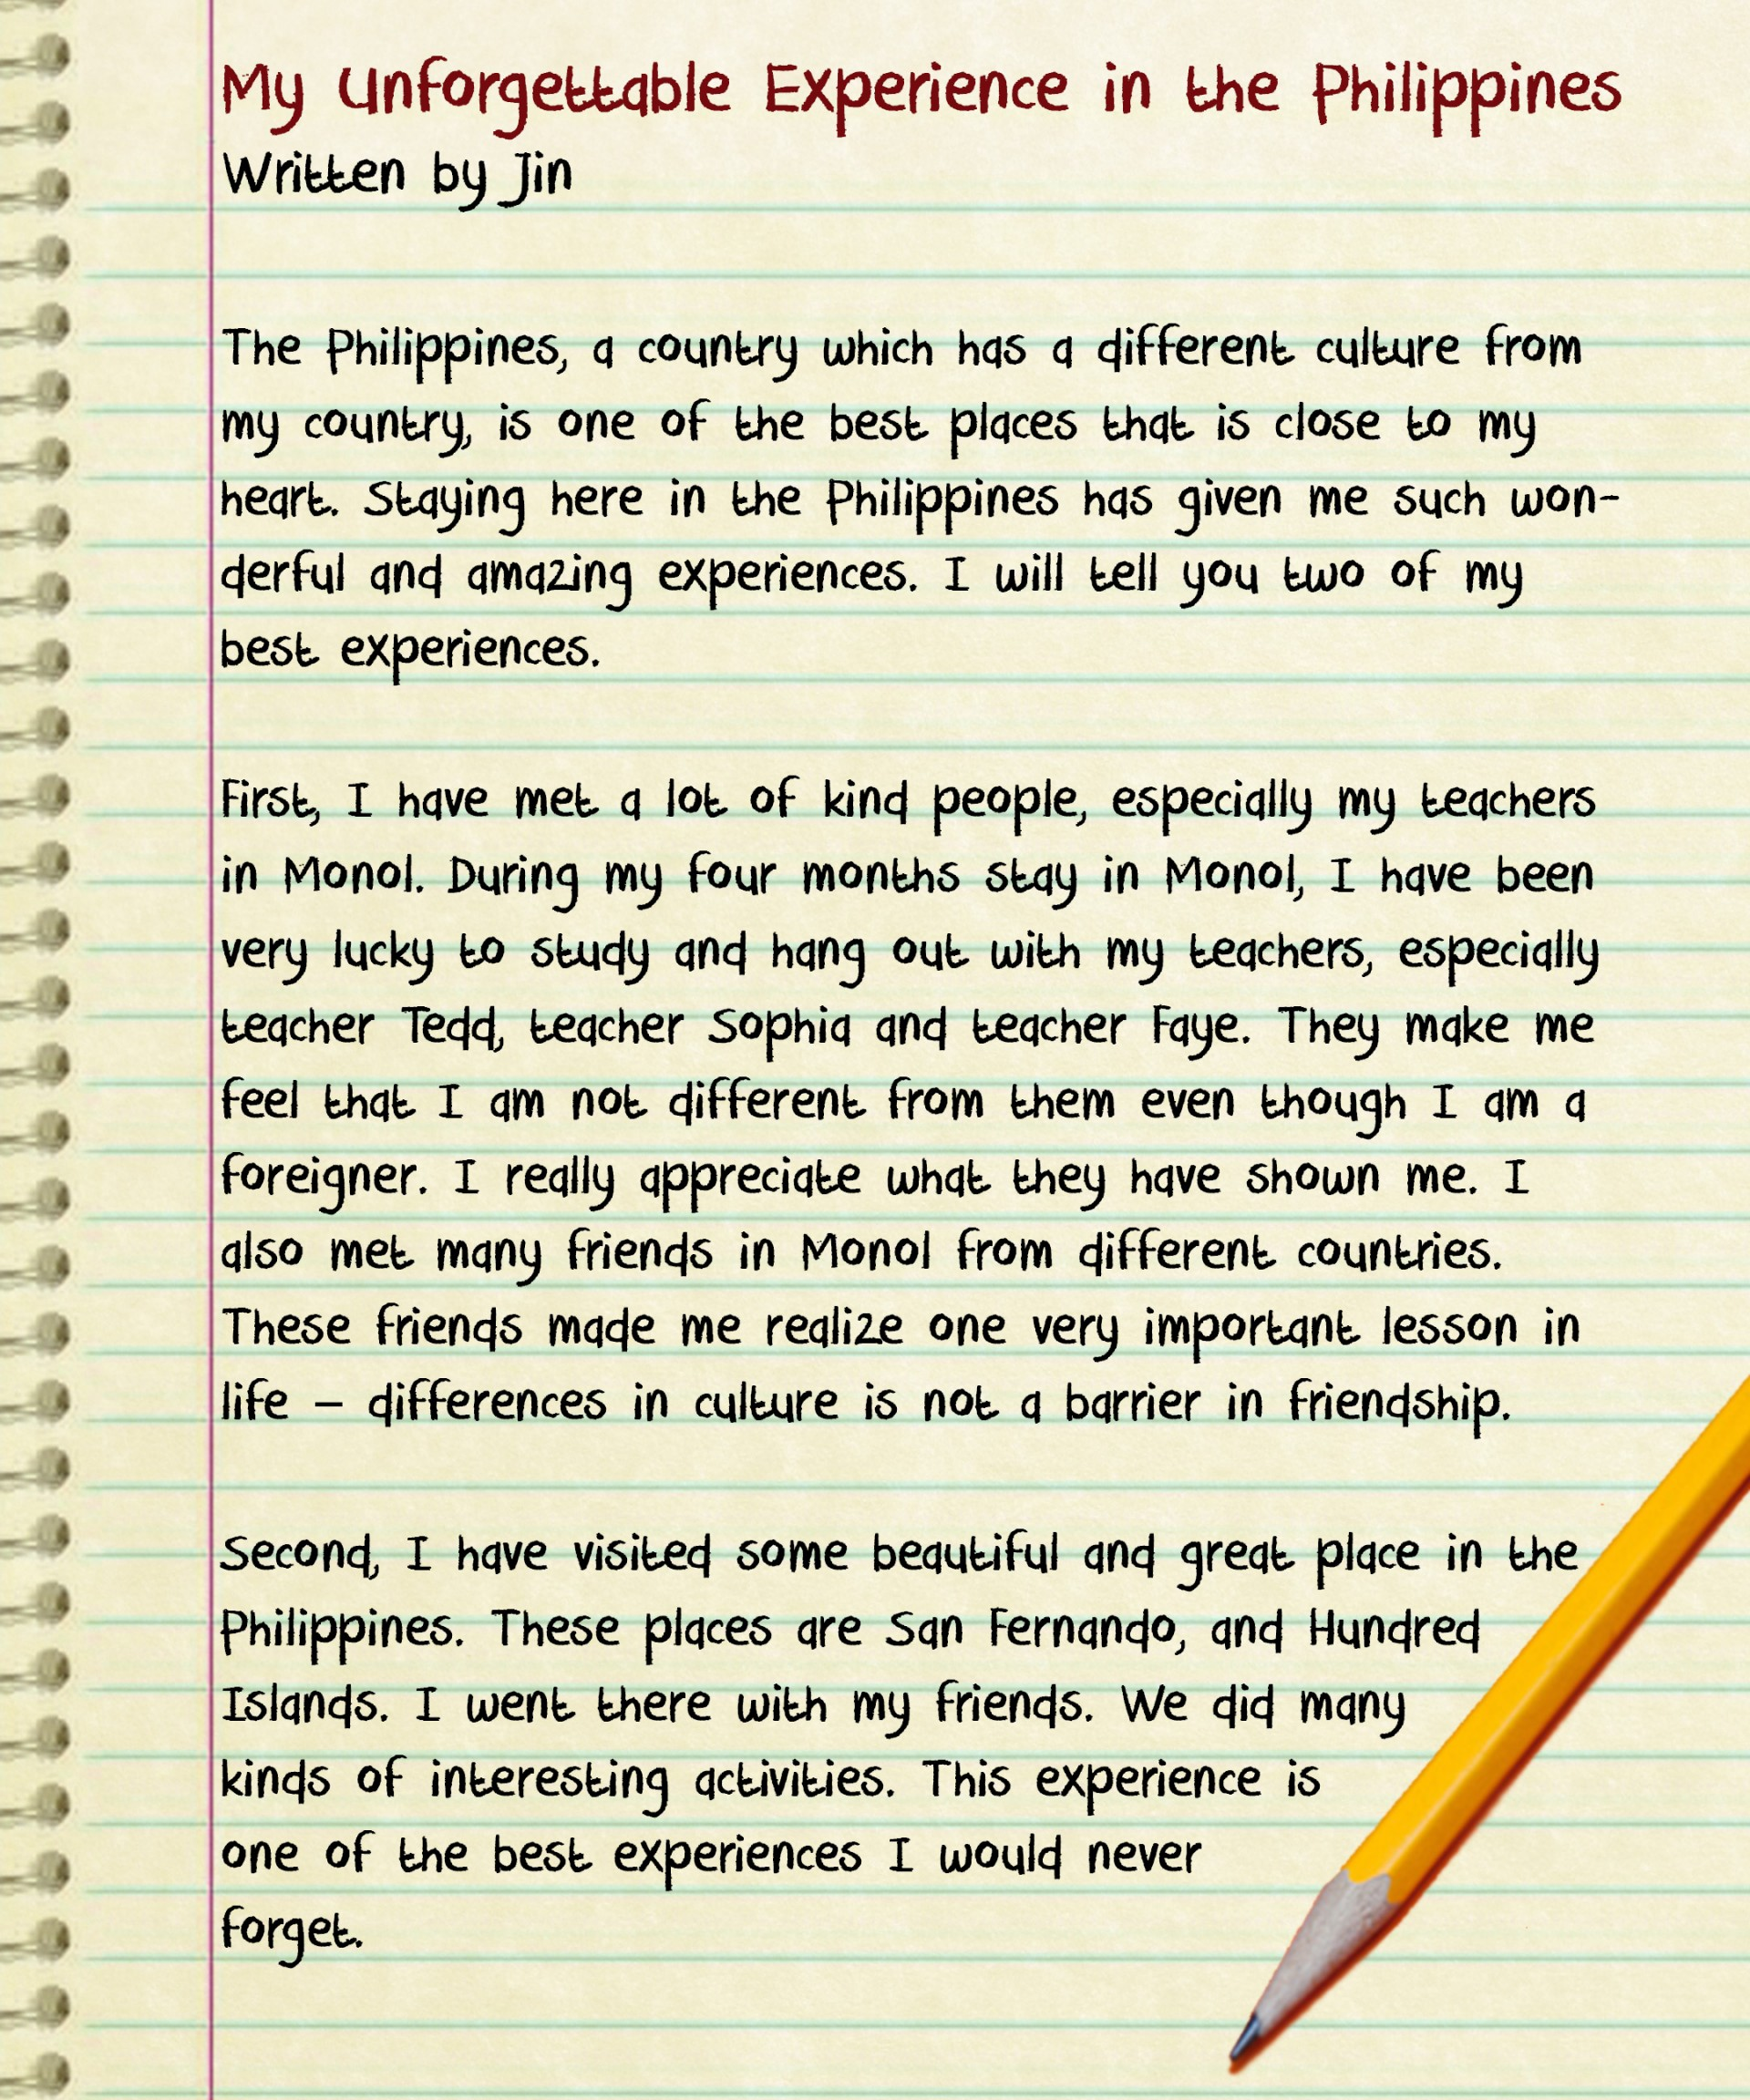 Unforgettable moment essay